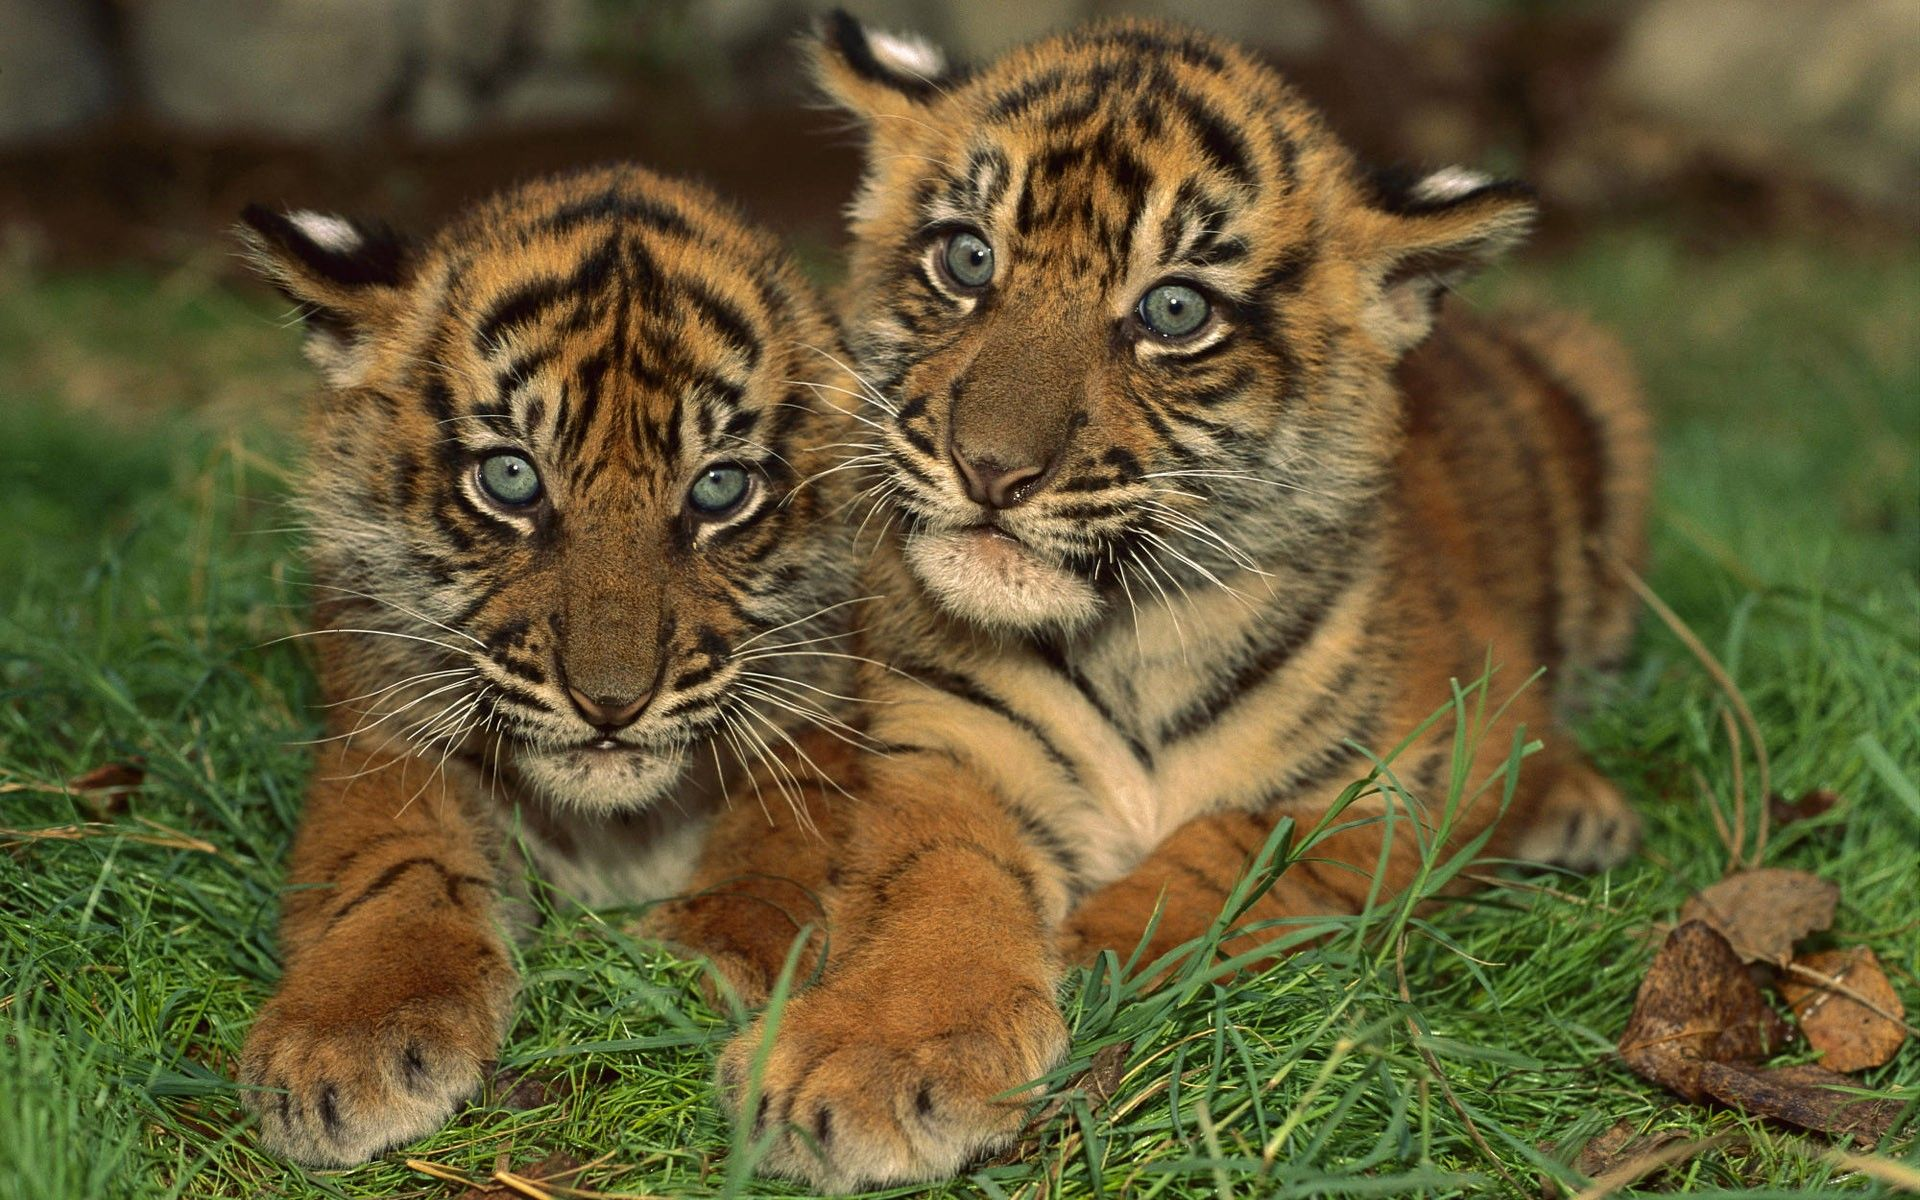 cubs, striped, small, wallpapers , Pc backgrounds, free photos